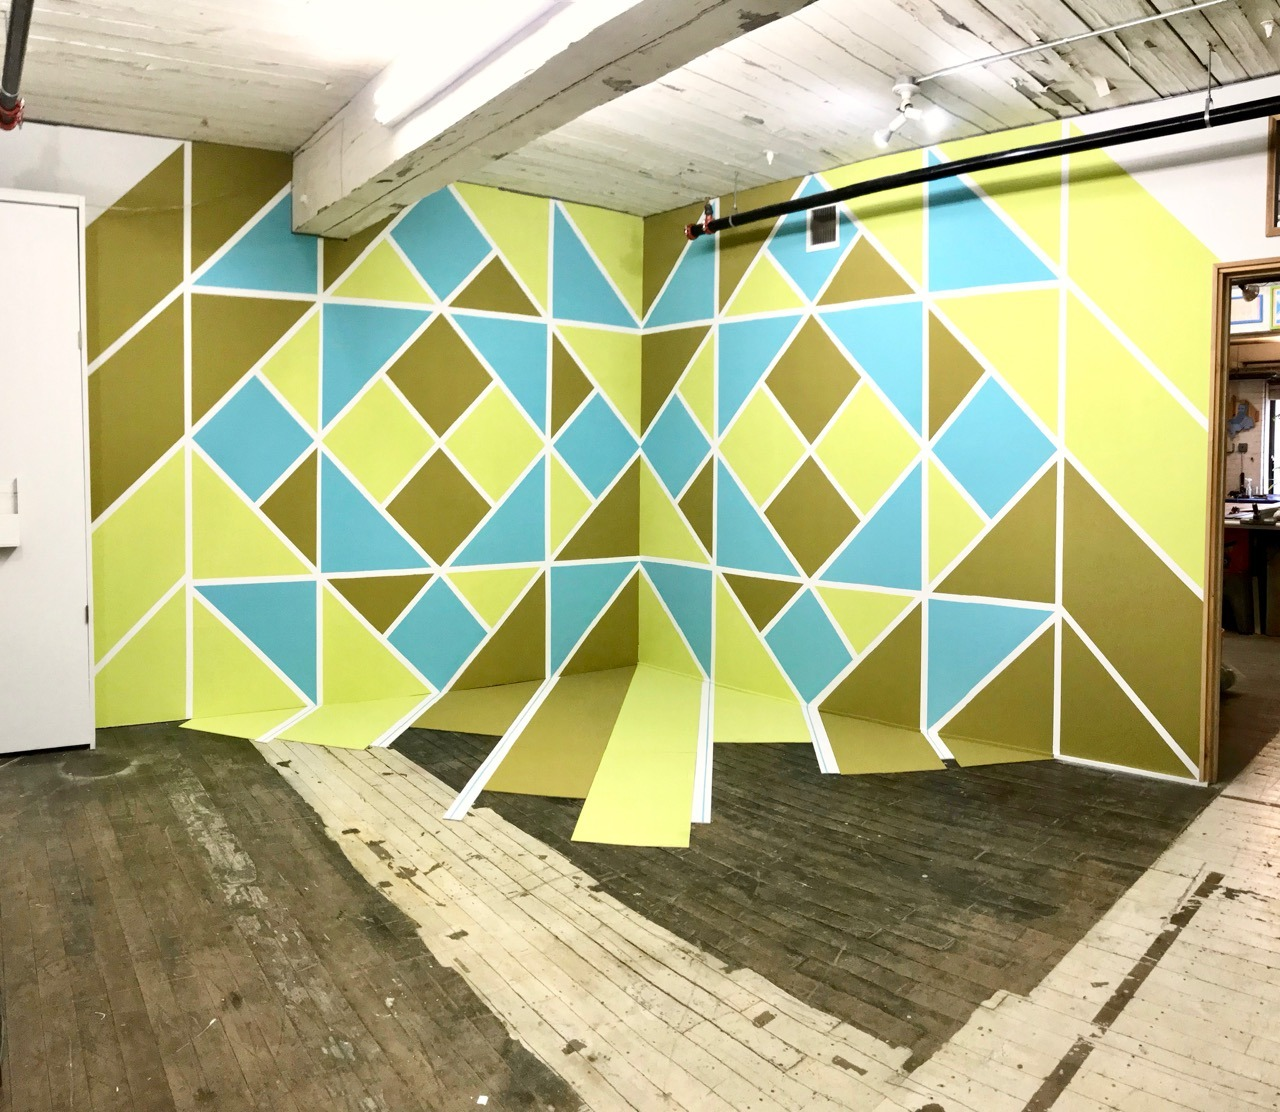 9′ by 20′ mural / installation